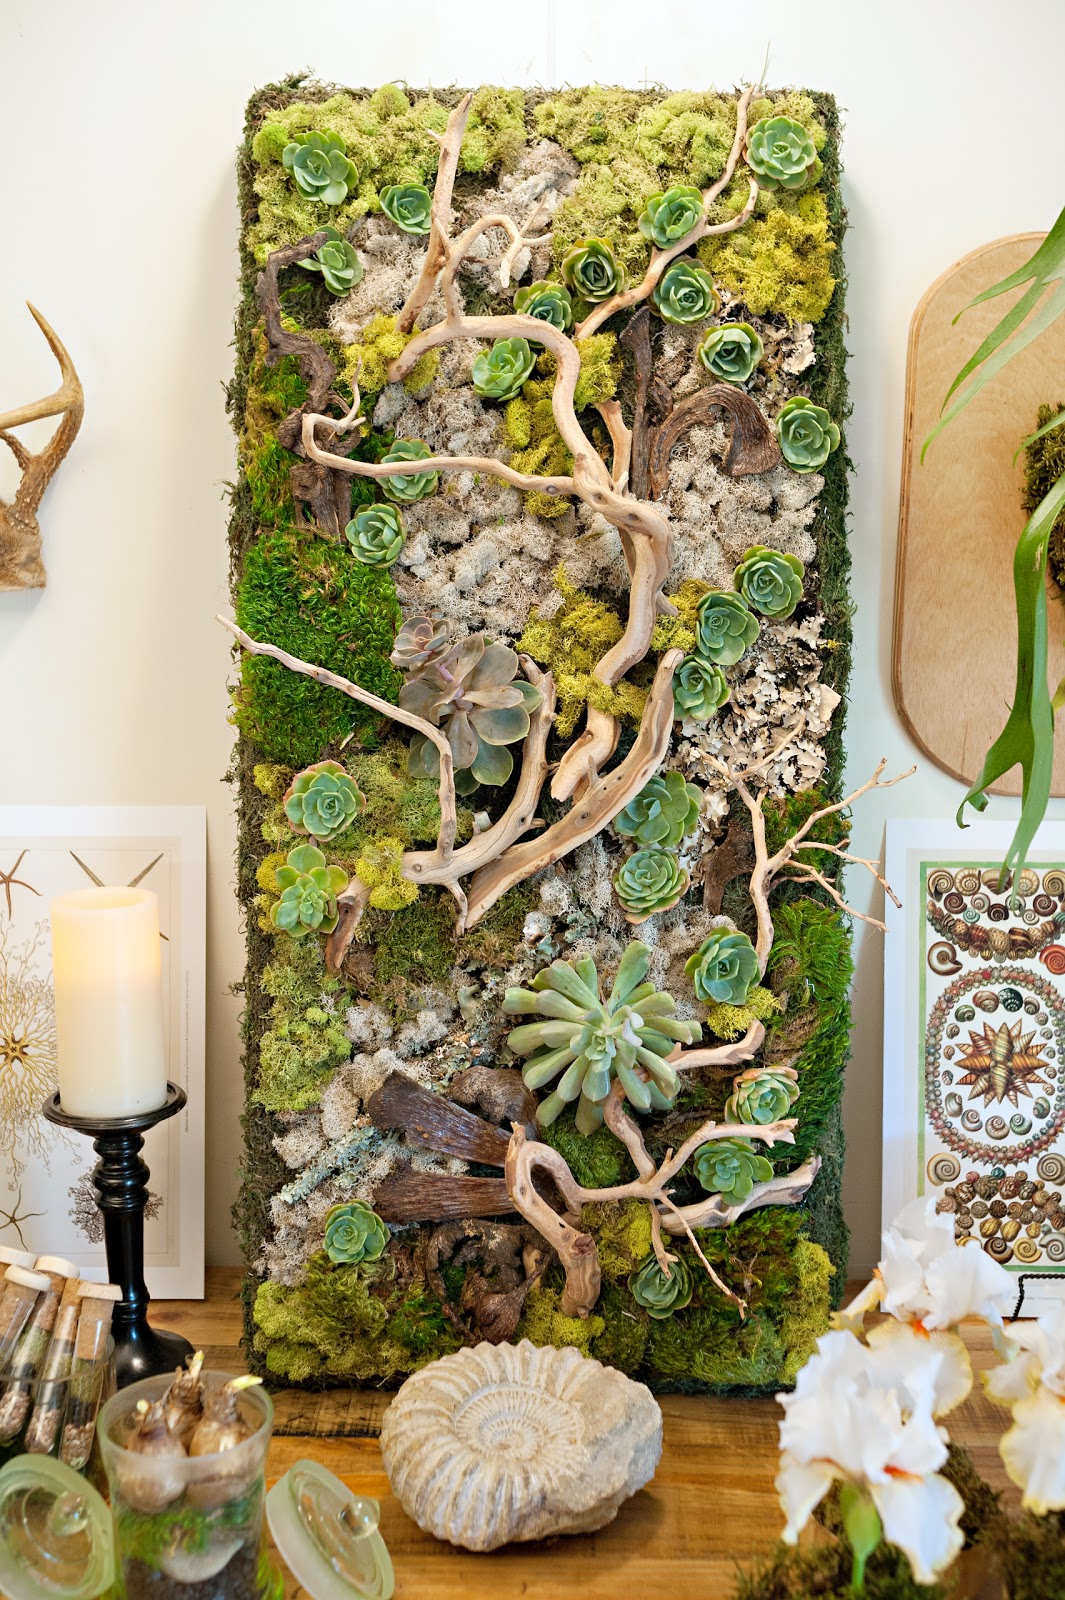 20 Awesome Vertical Garden Ideas That Will Change The Way